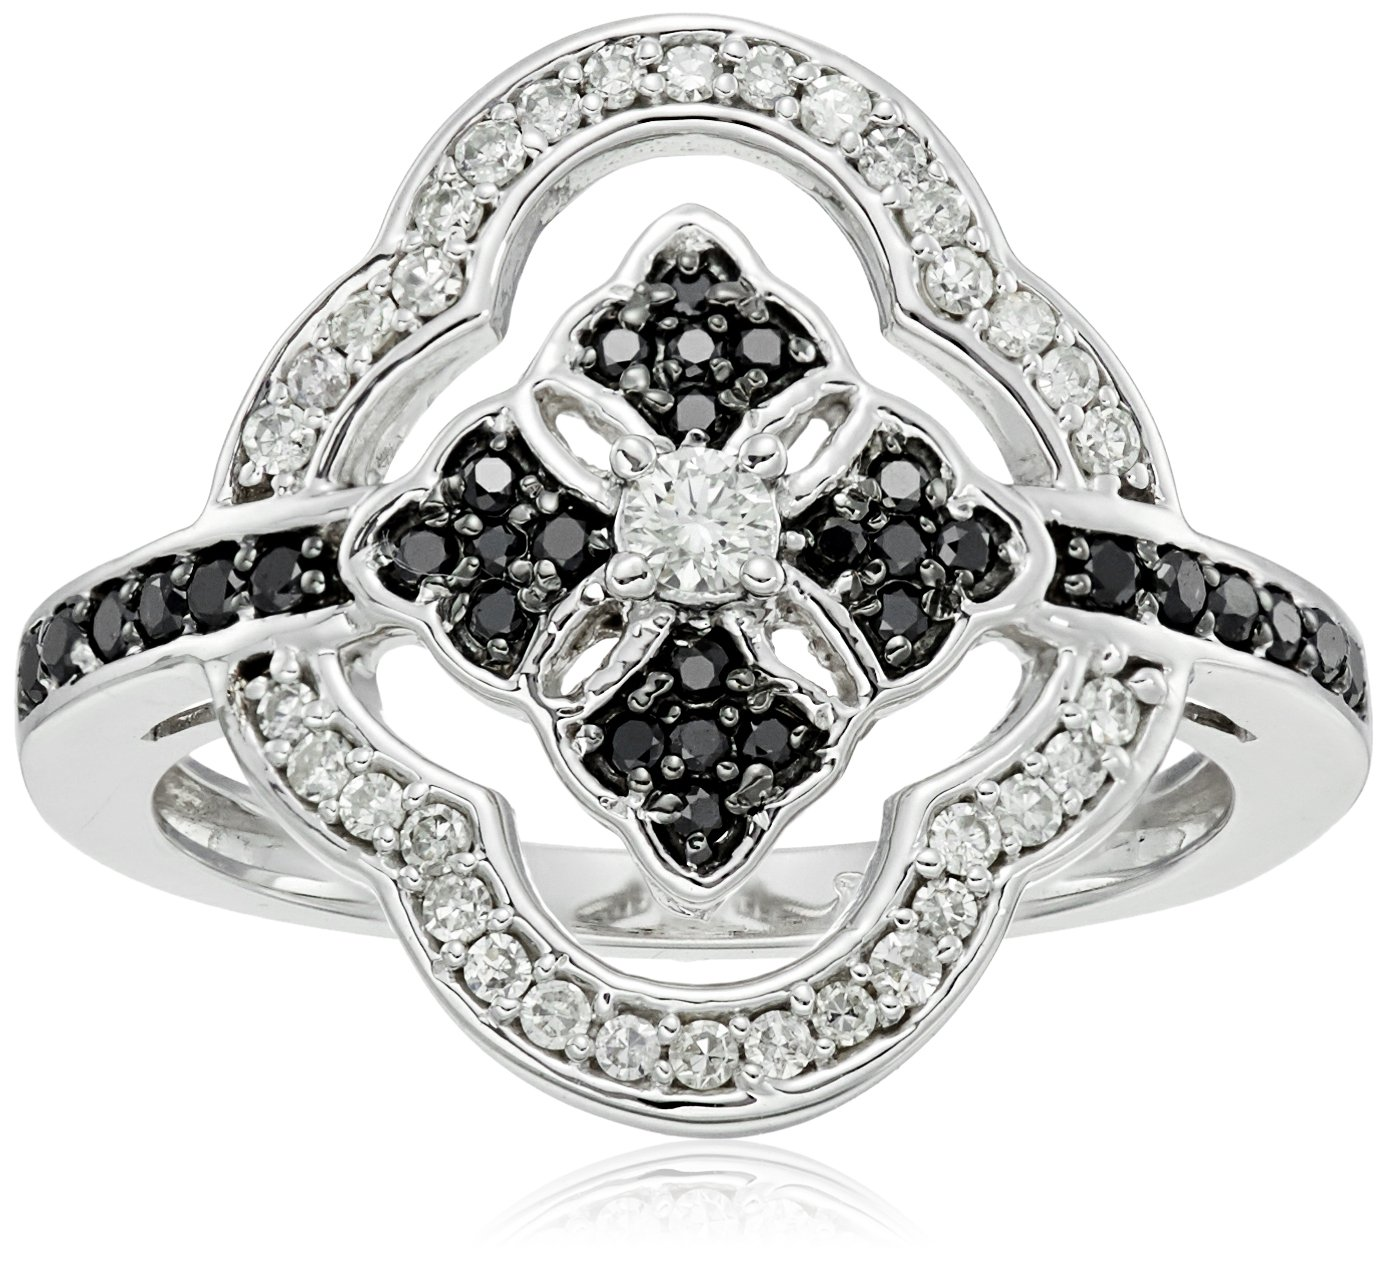 10k Black and White Diamond Ring (3/8cttw, H-I Color, I2-I3 Clarity), Size 6 by Amazon Collection